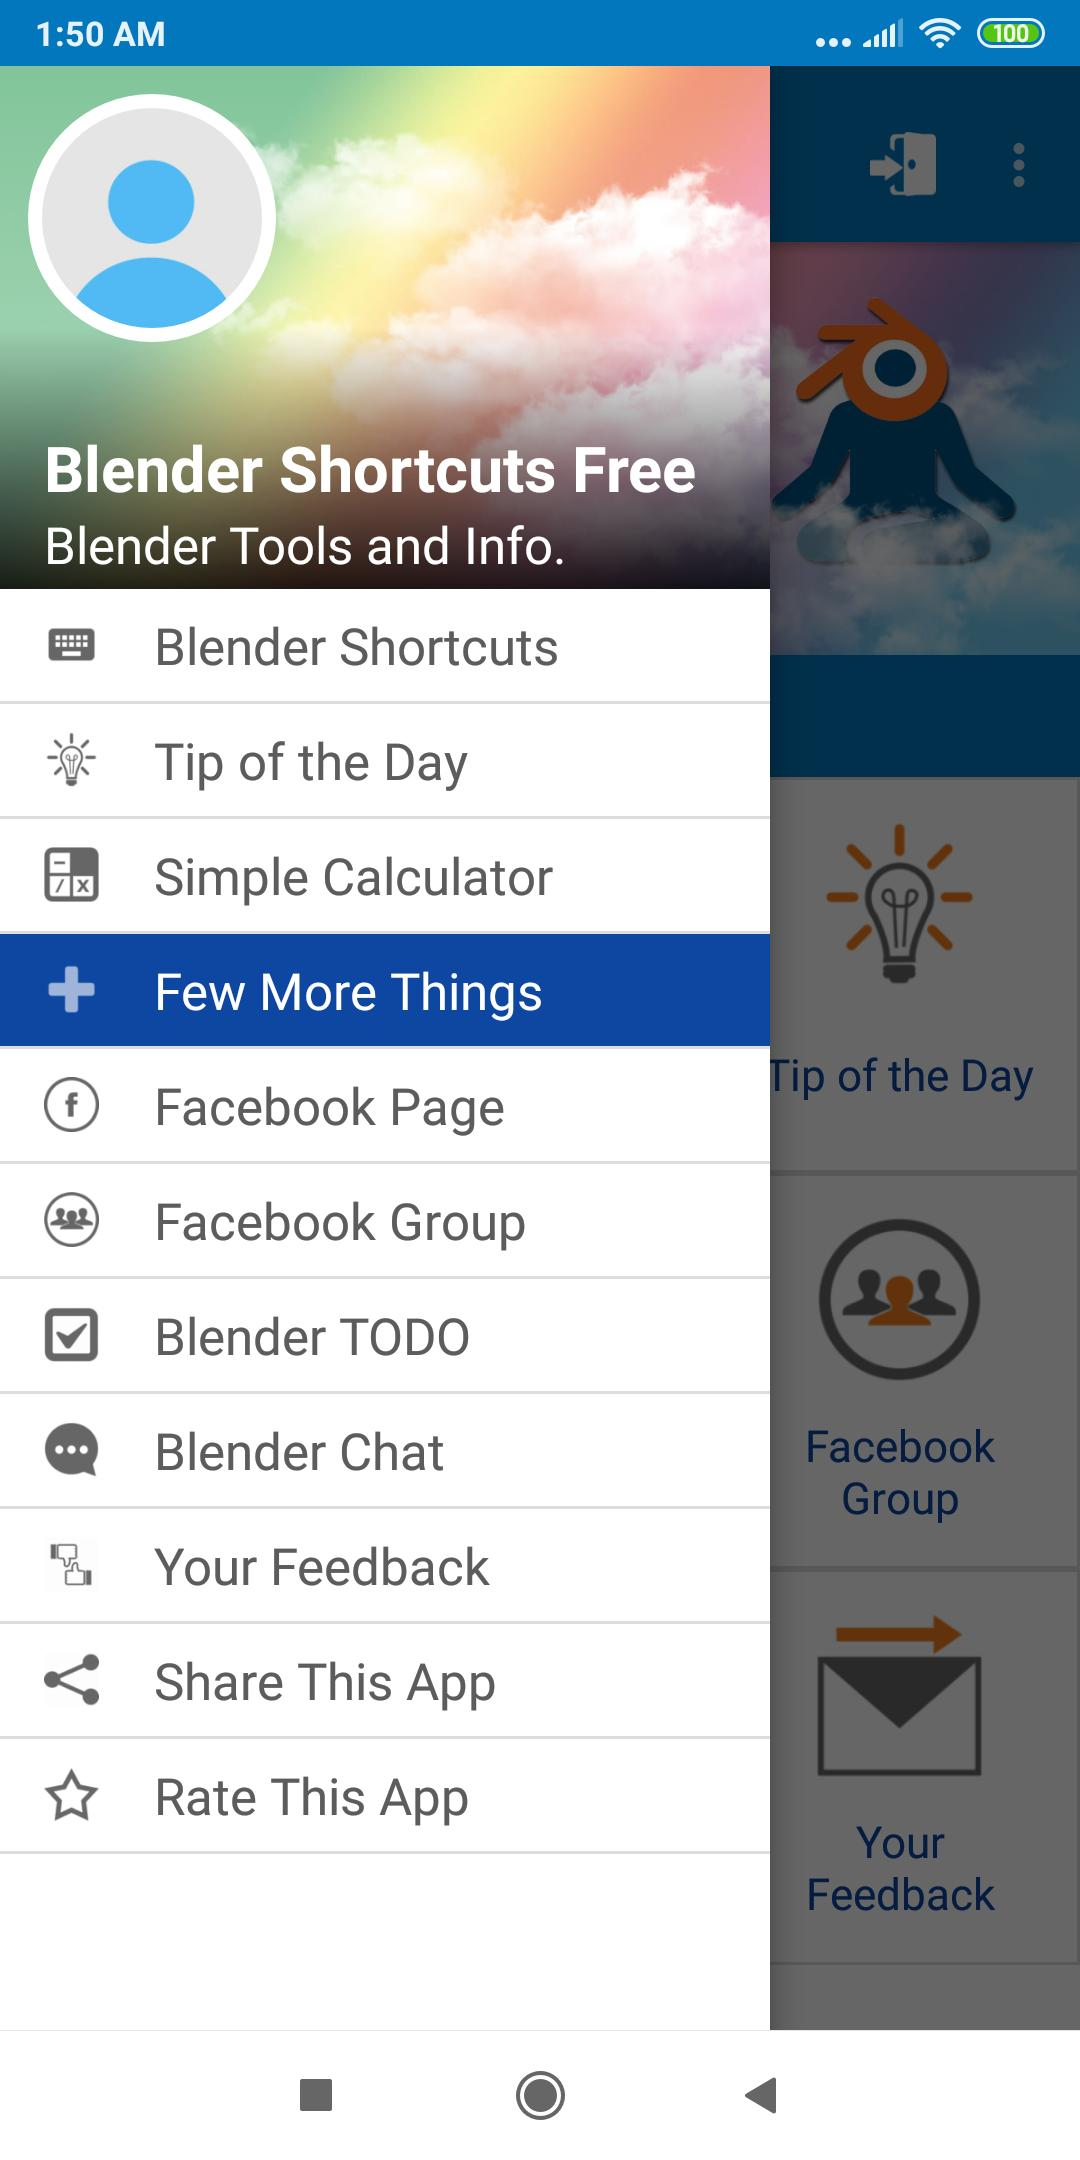 Blender 3D Shortcuts Free for Android - APK Download